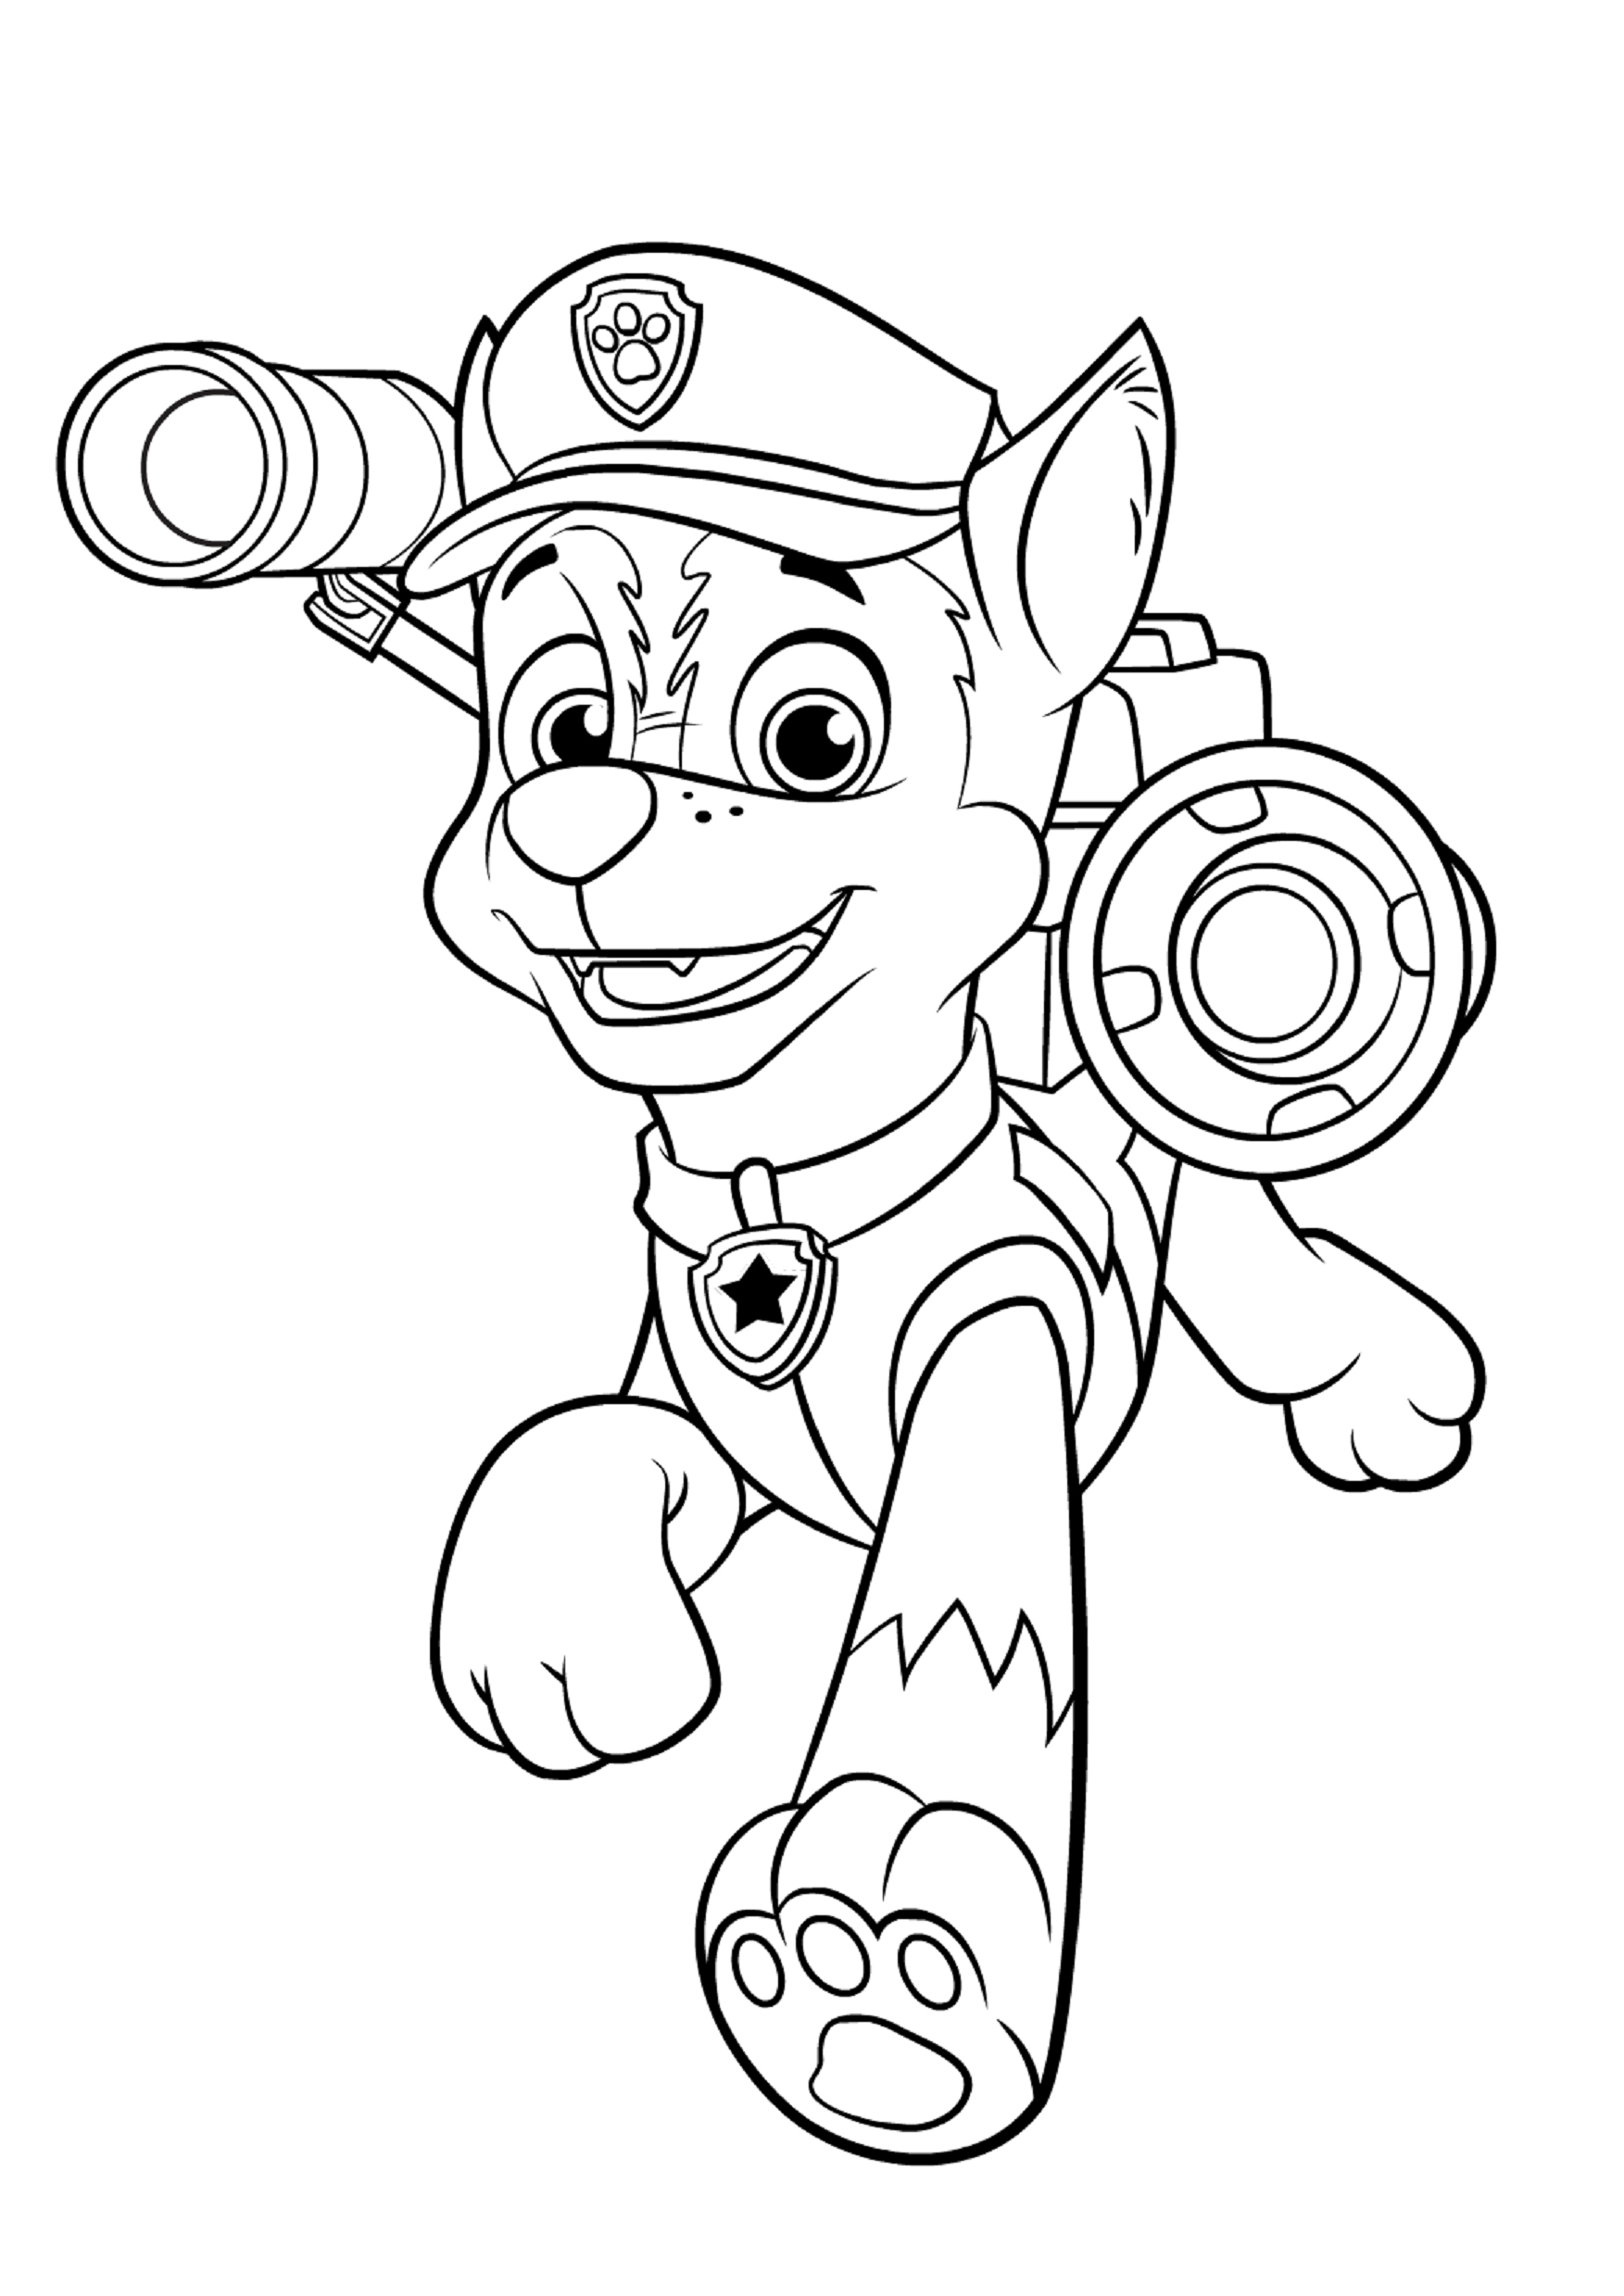 paw patrol chase coloring 25 excellent picture of chase paw patrol coloring page paw chase coloring patrol